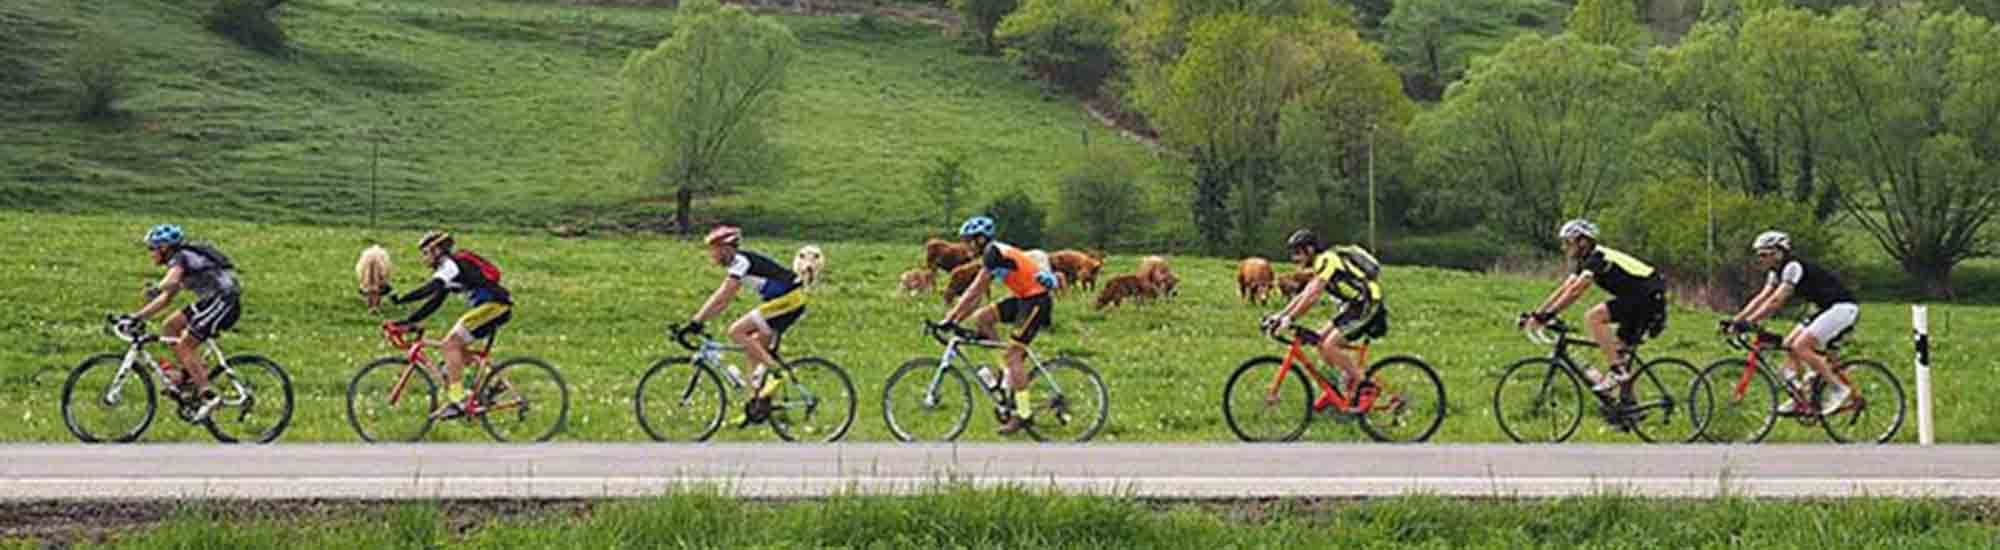 Bespoke Cycling - Girona Weekend - 25/4/19-28/4/19 - £1700